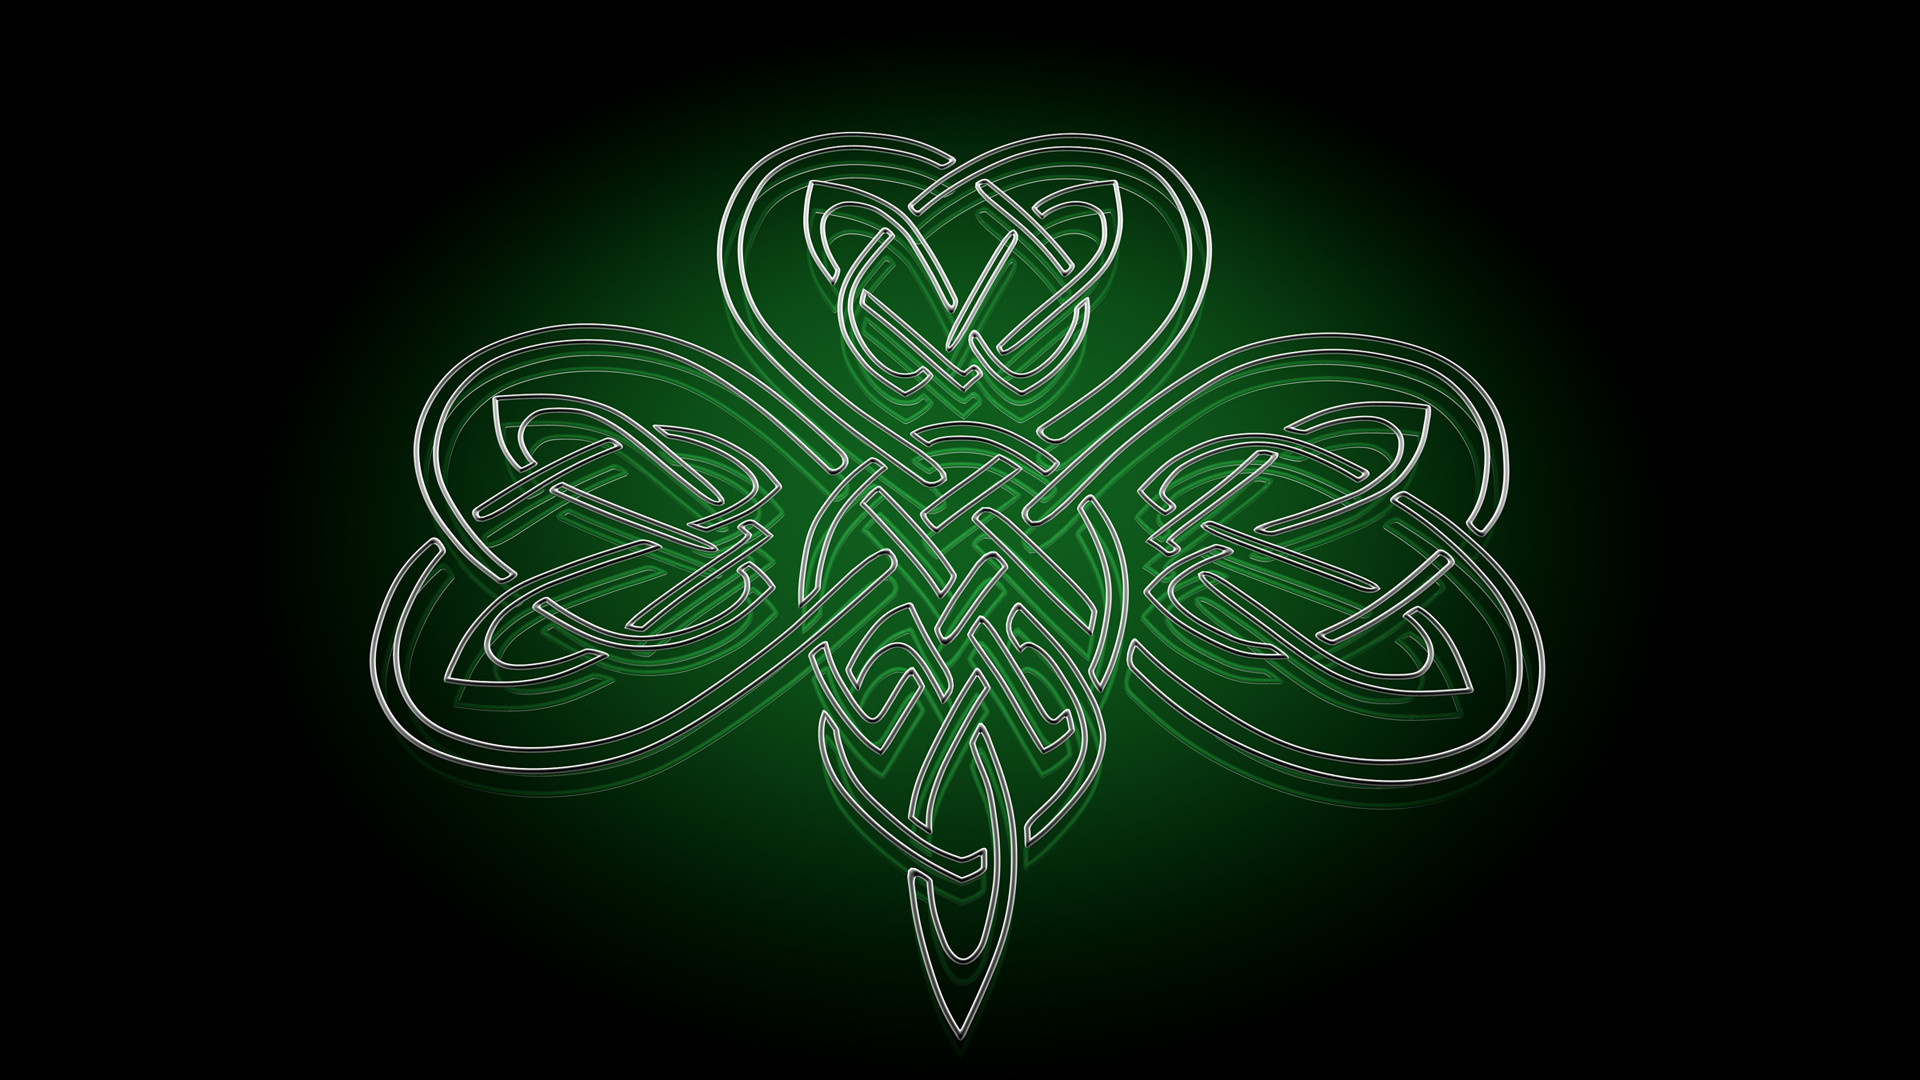 celtic knot wallpapers desktop  46  images